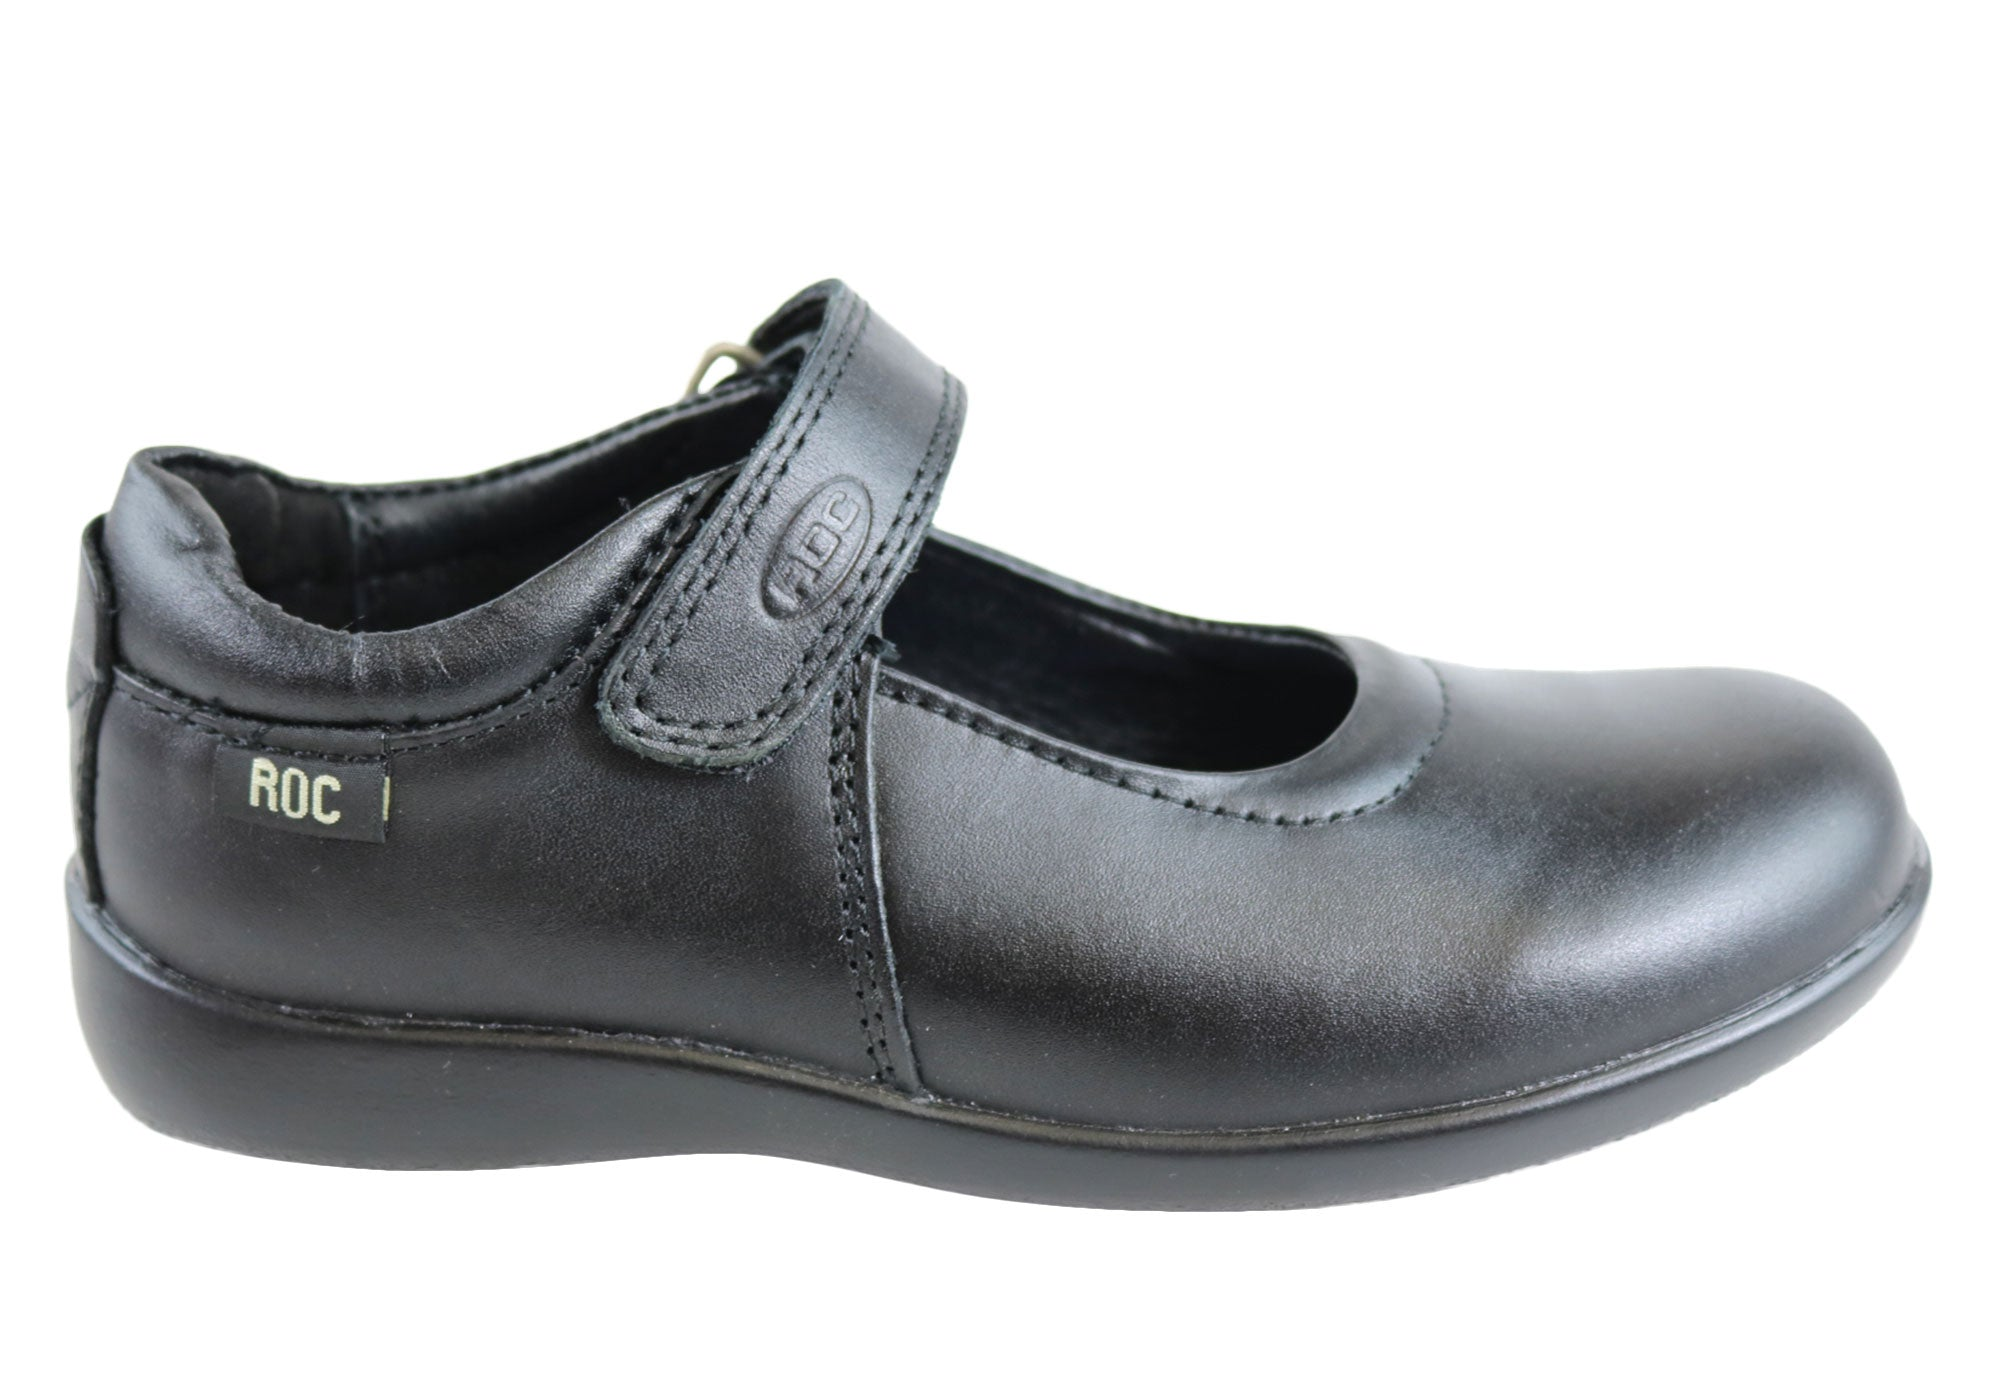 NEW ROC JULIETTE JUNIOR GIRLS MARY JANE SCHOOL SHOES CUSHIONED COMFORTABLE 1ab78568c